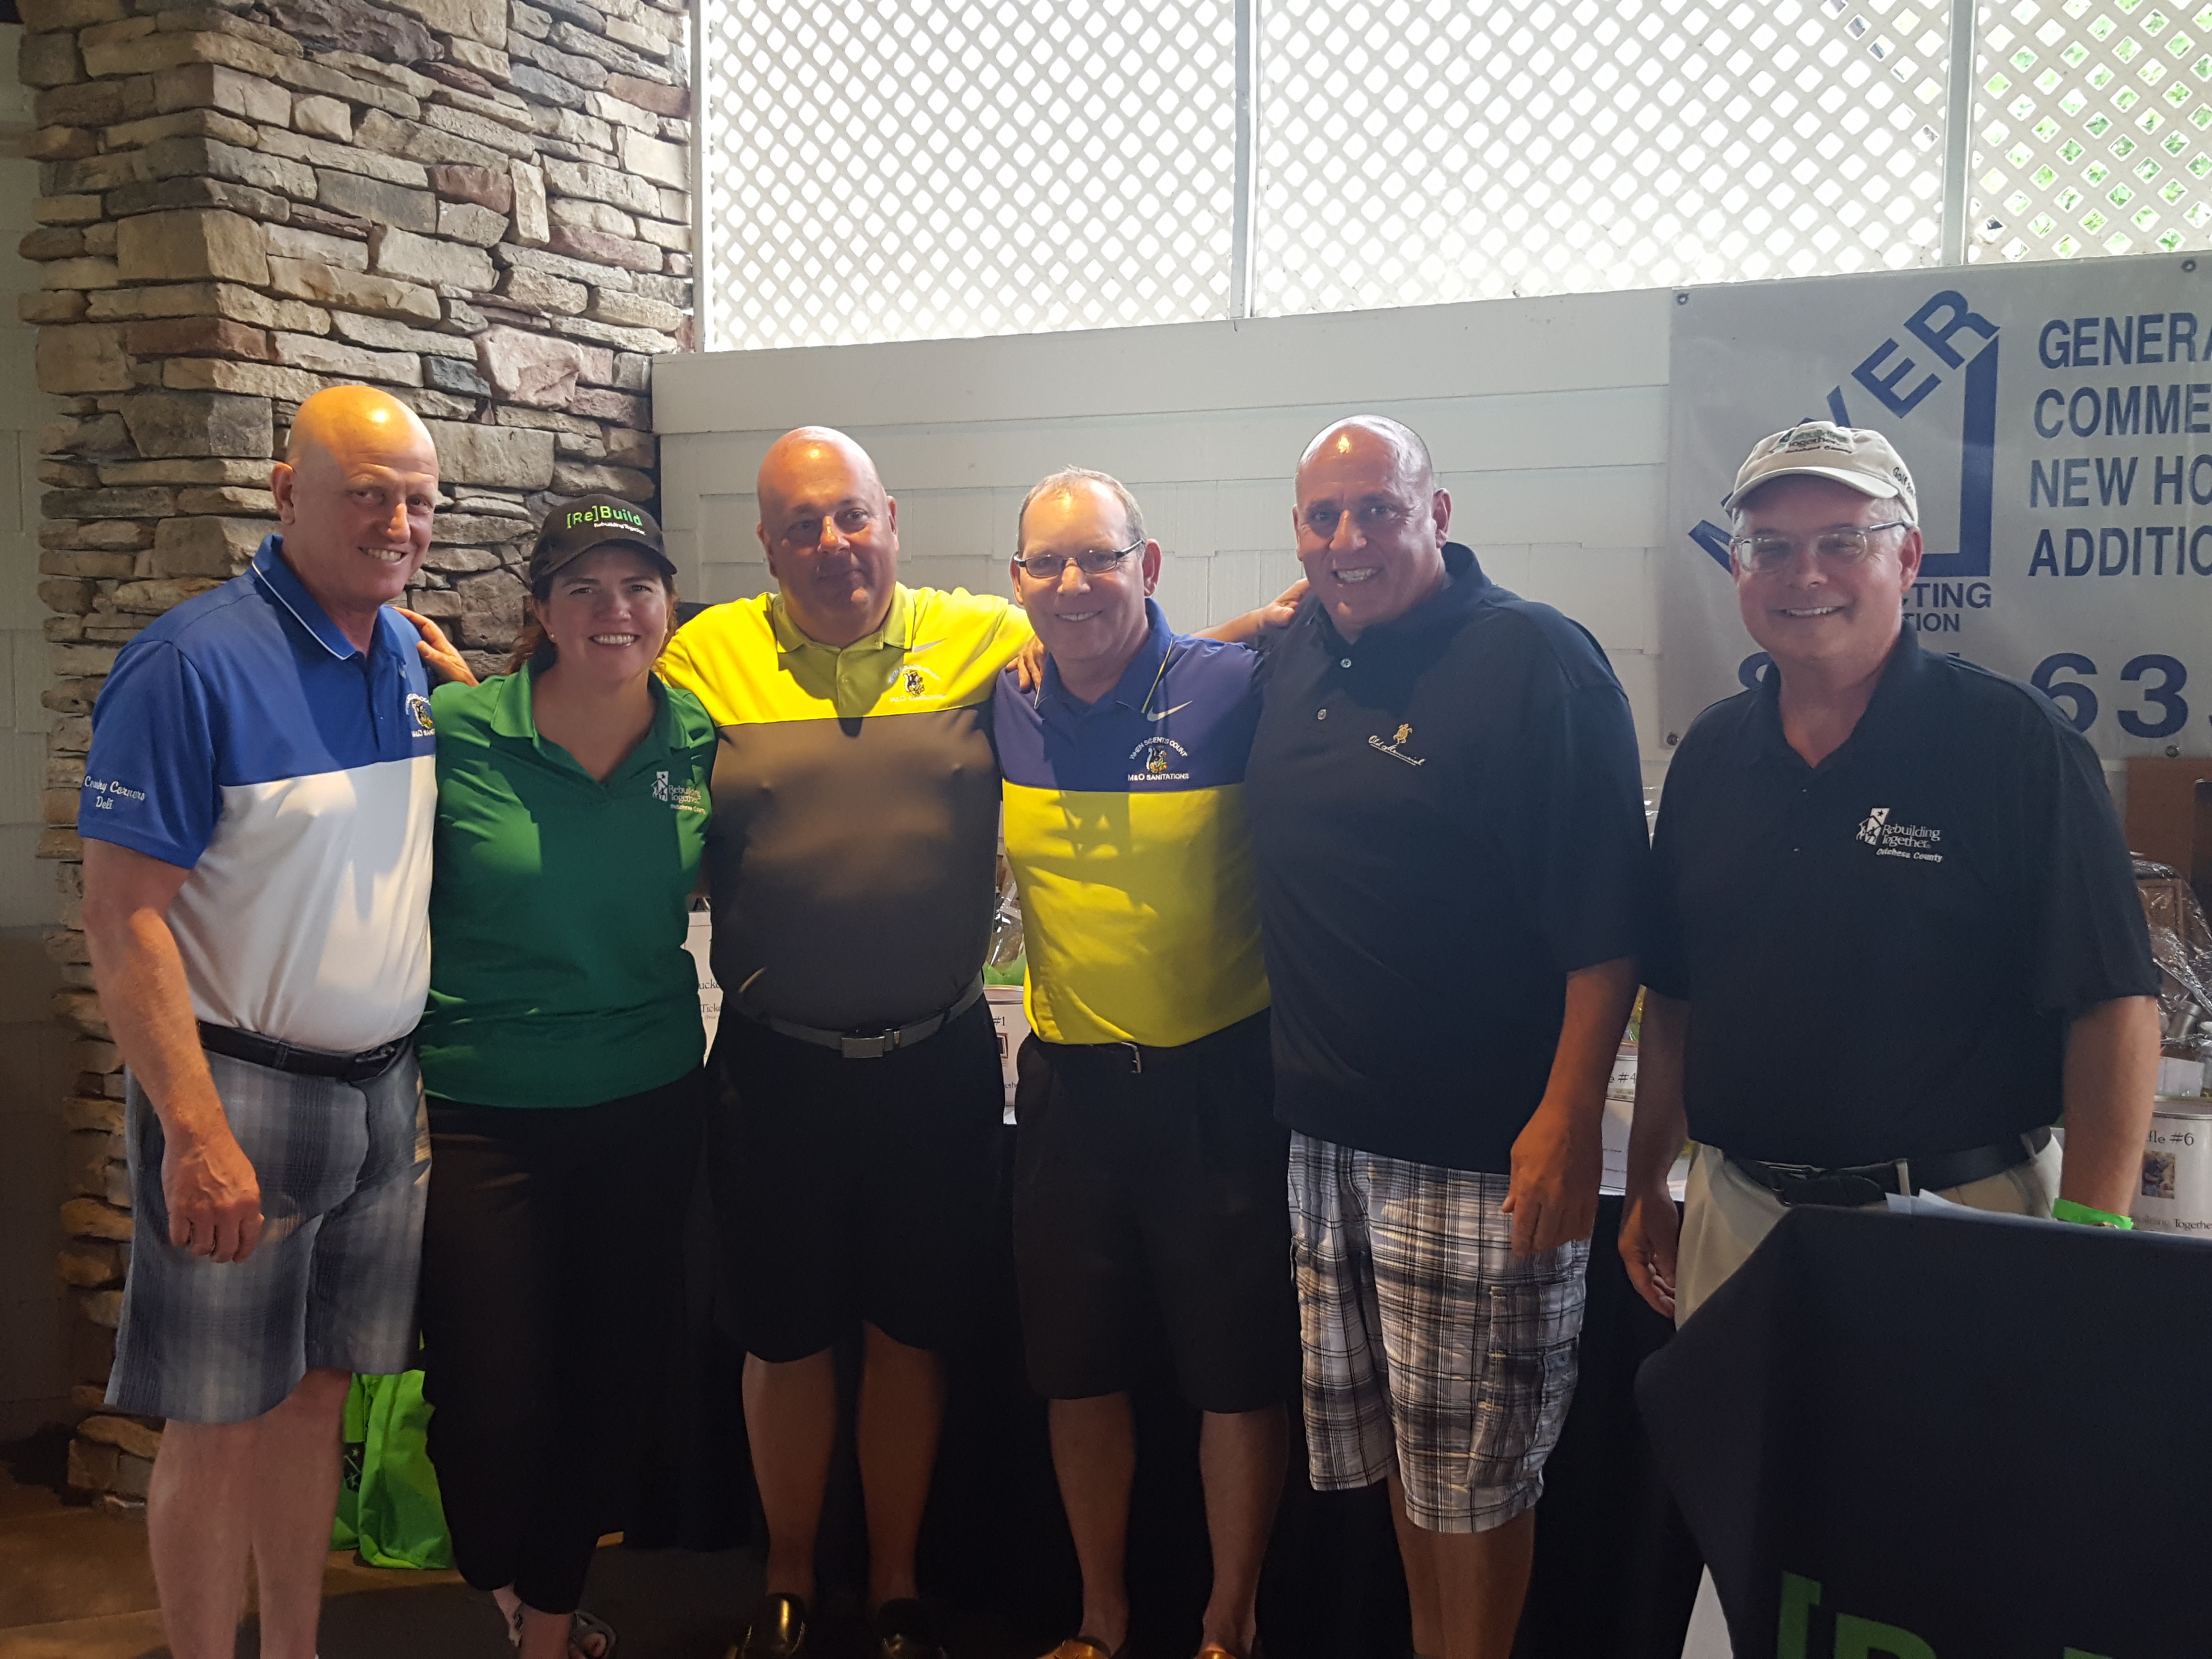 Fran Pomarico, Executive Manager of Poughkeepsie Nissan, with his winning foursome and RTDC ED Christina Boryk and Golf Committee Chair Bill Francis.